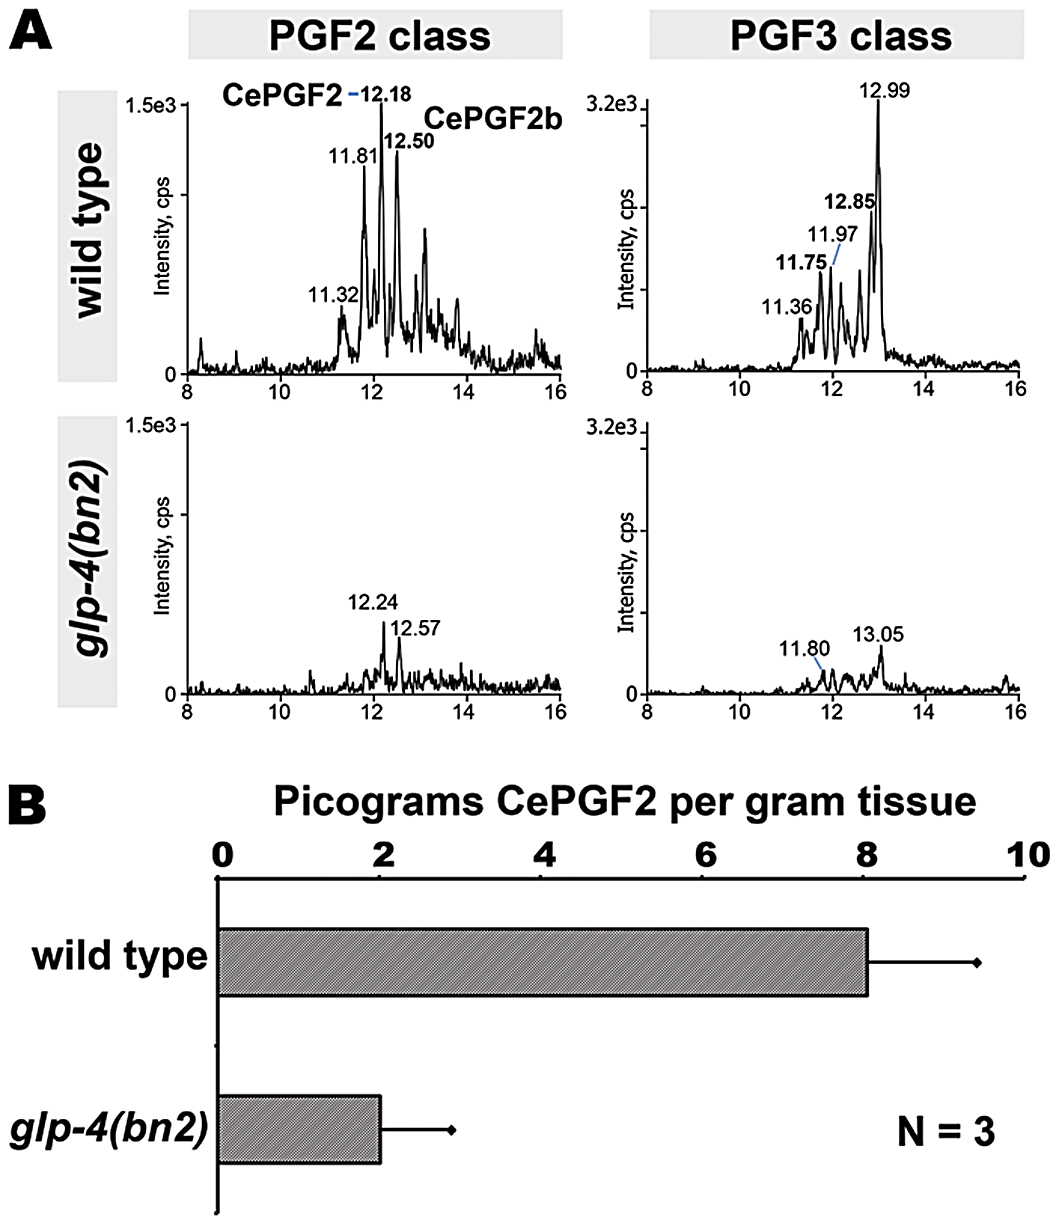 Prostaglandins in adult wild type and germline-deficient <i>glp-4</i> mutants.